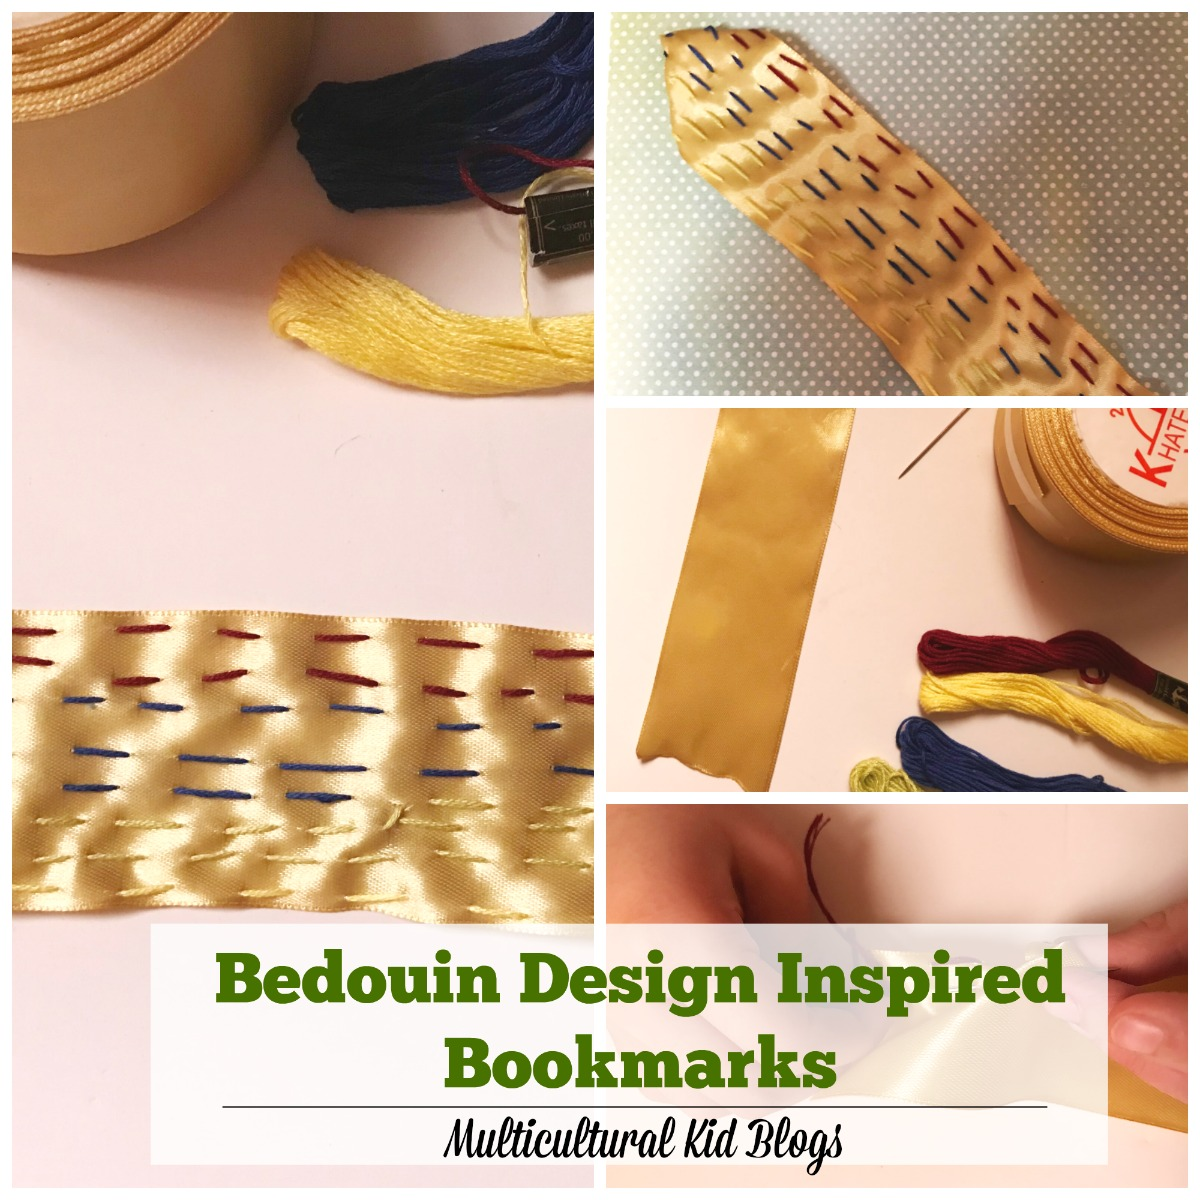 Multicultural Kid Blogs Bedouin weaving Inspired Bookmarks